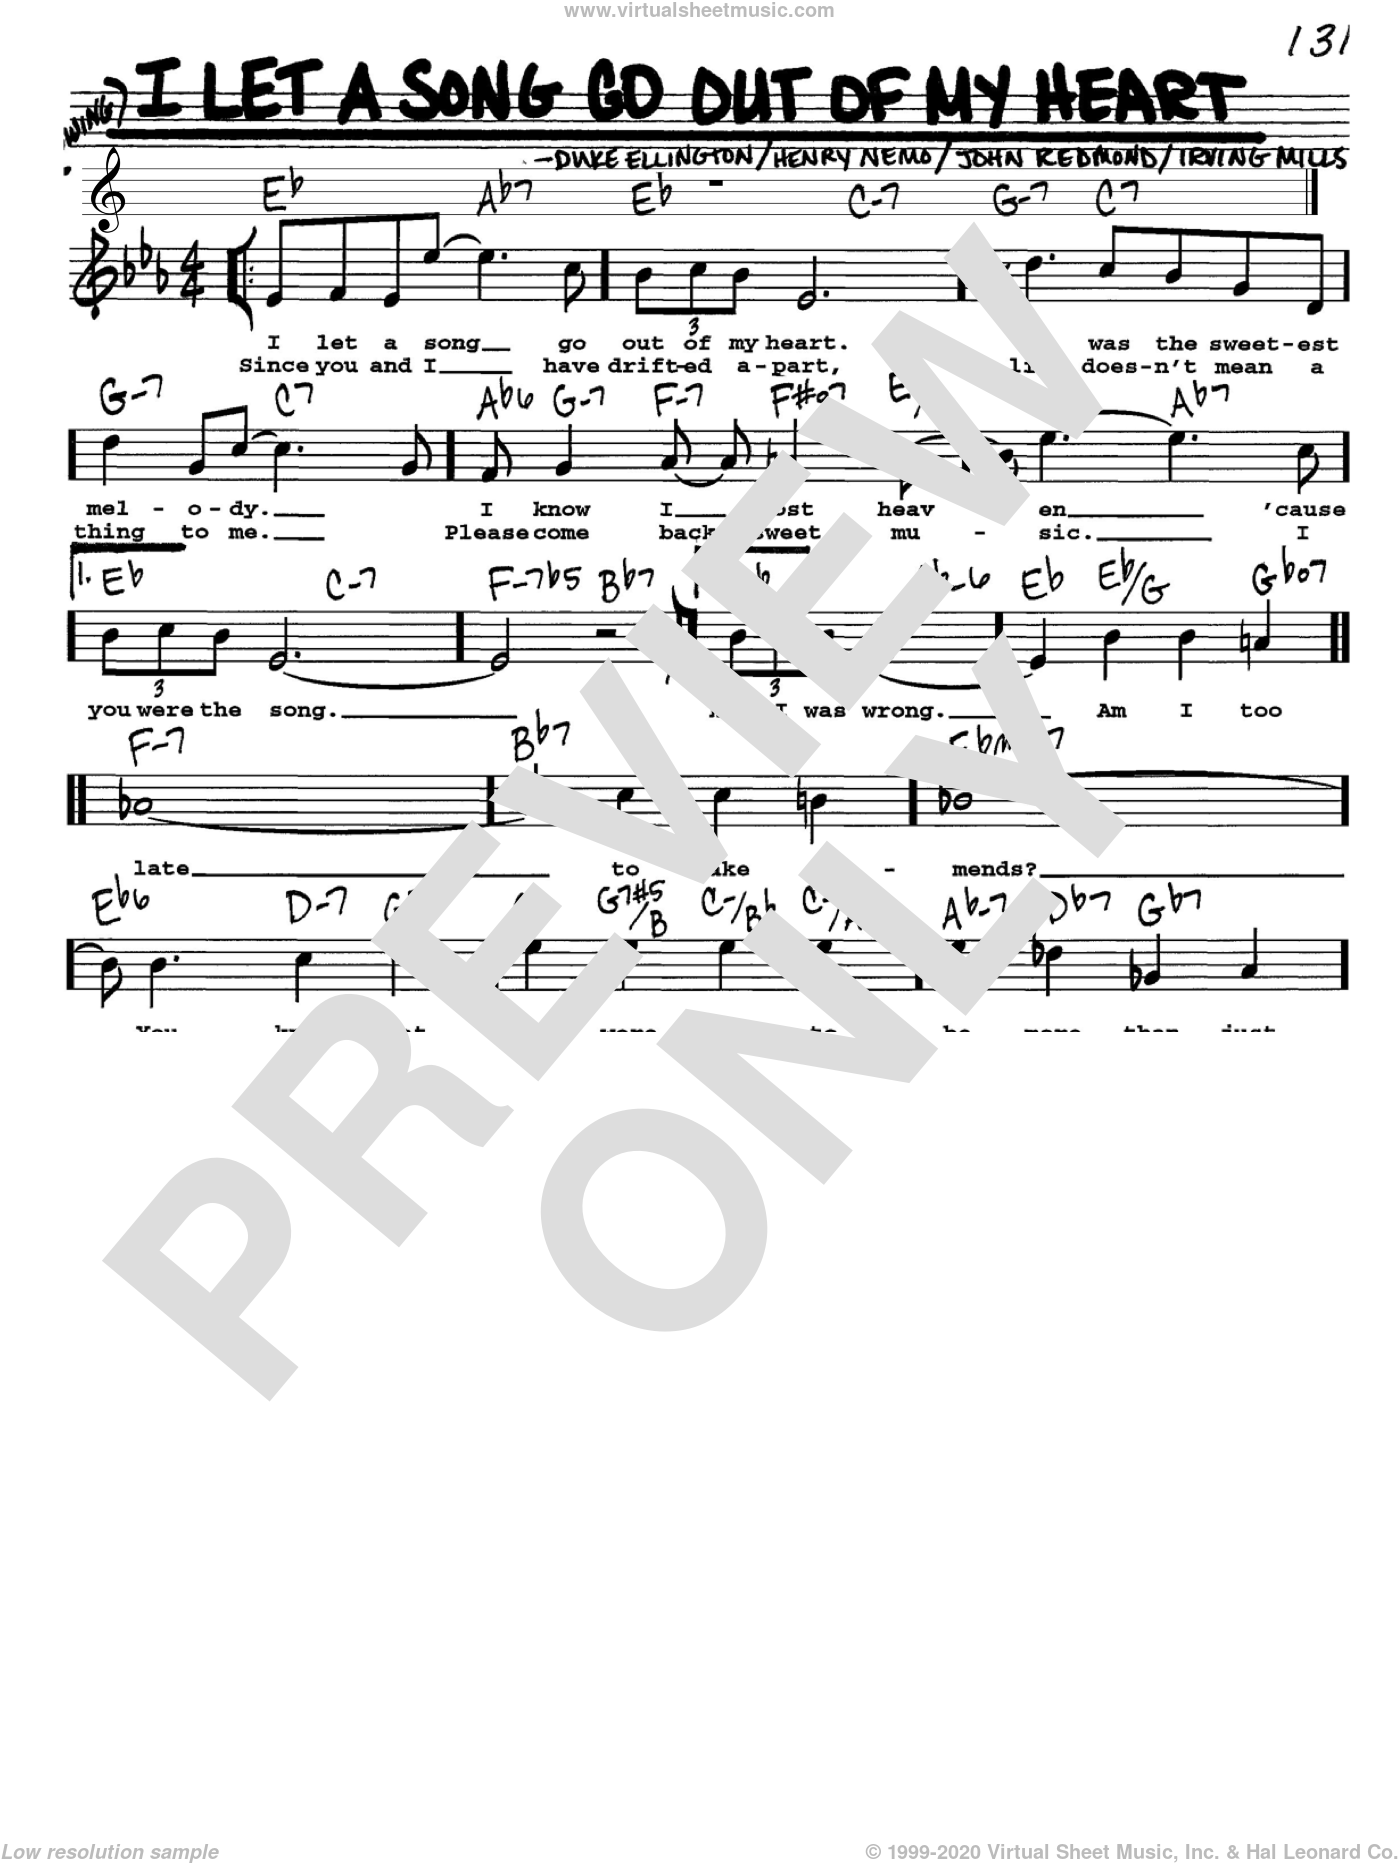 I Let A Song Go Out Of My Heart sheet music for voice and other instruments (Vocal Volume 1) by John Redmond, Duke Ellington, Henry Nemo and Irving Mills. Score Image Preview.